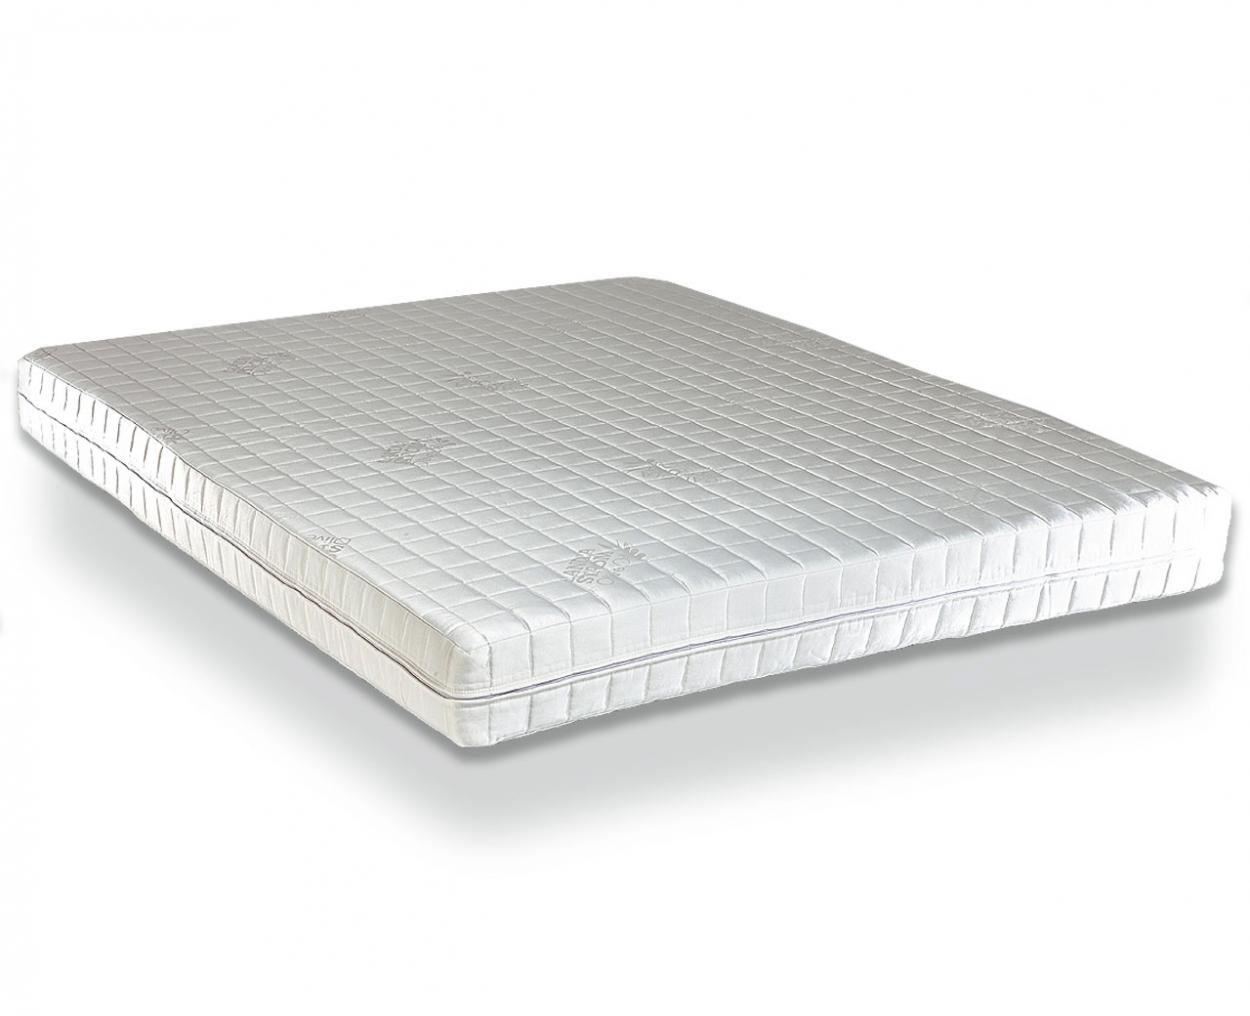 CandiaStrom - Mattress MINOAN CALMNESS - NATUREZZA COLLECTION -  General Image